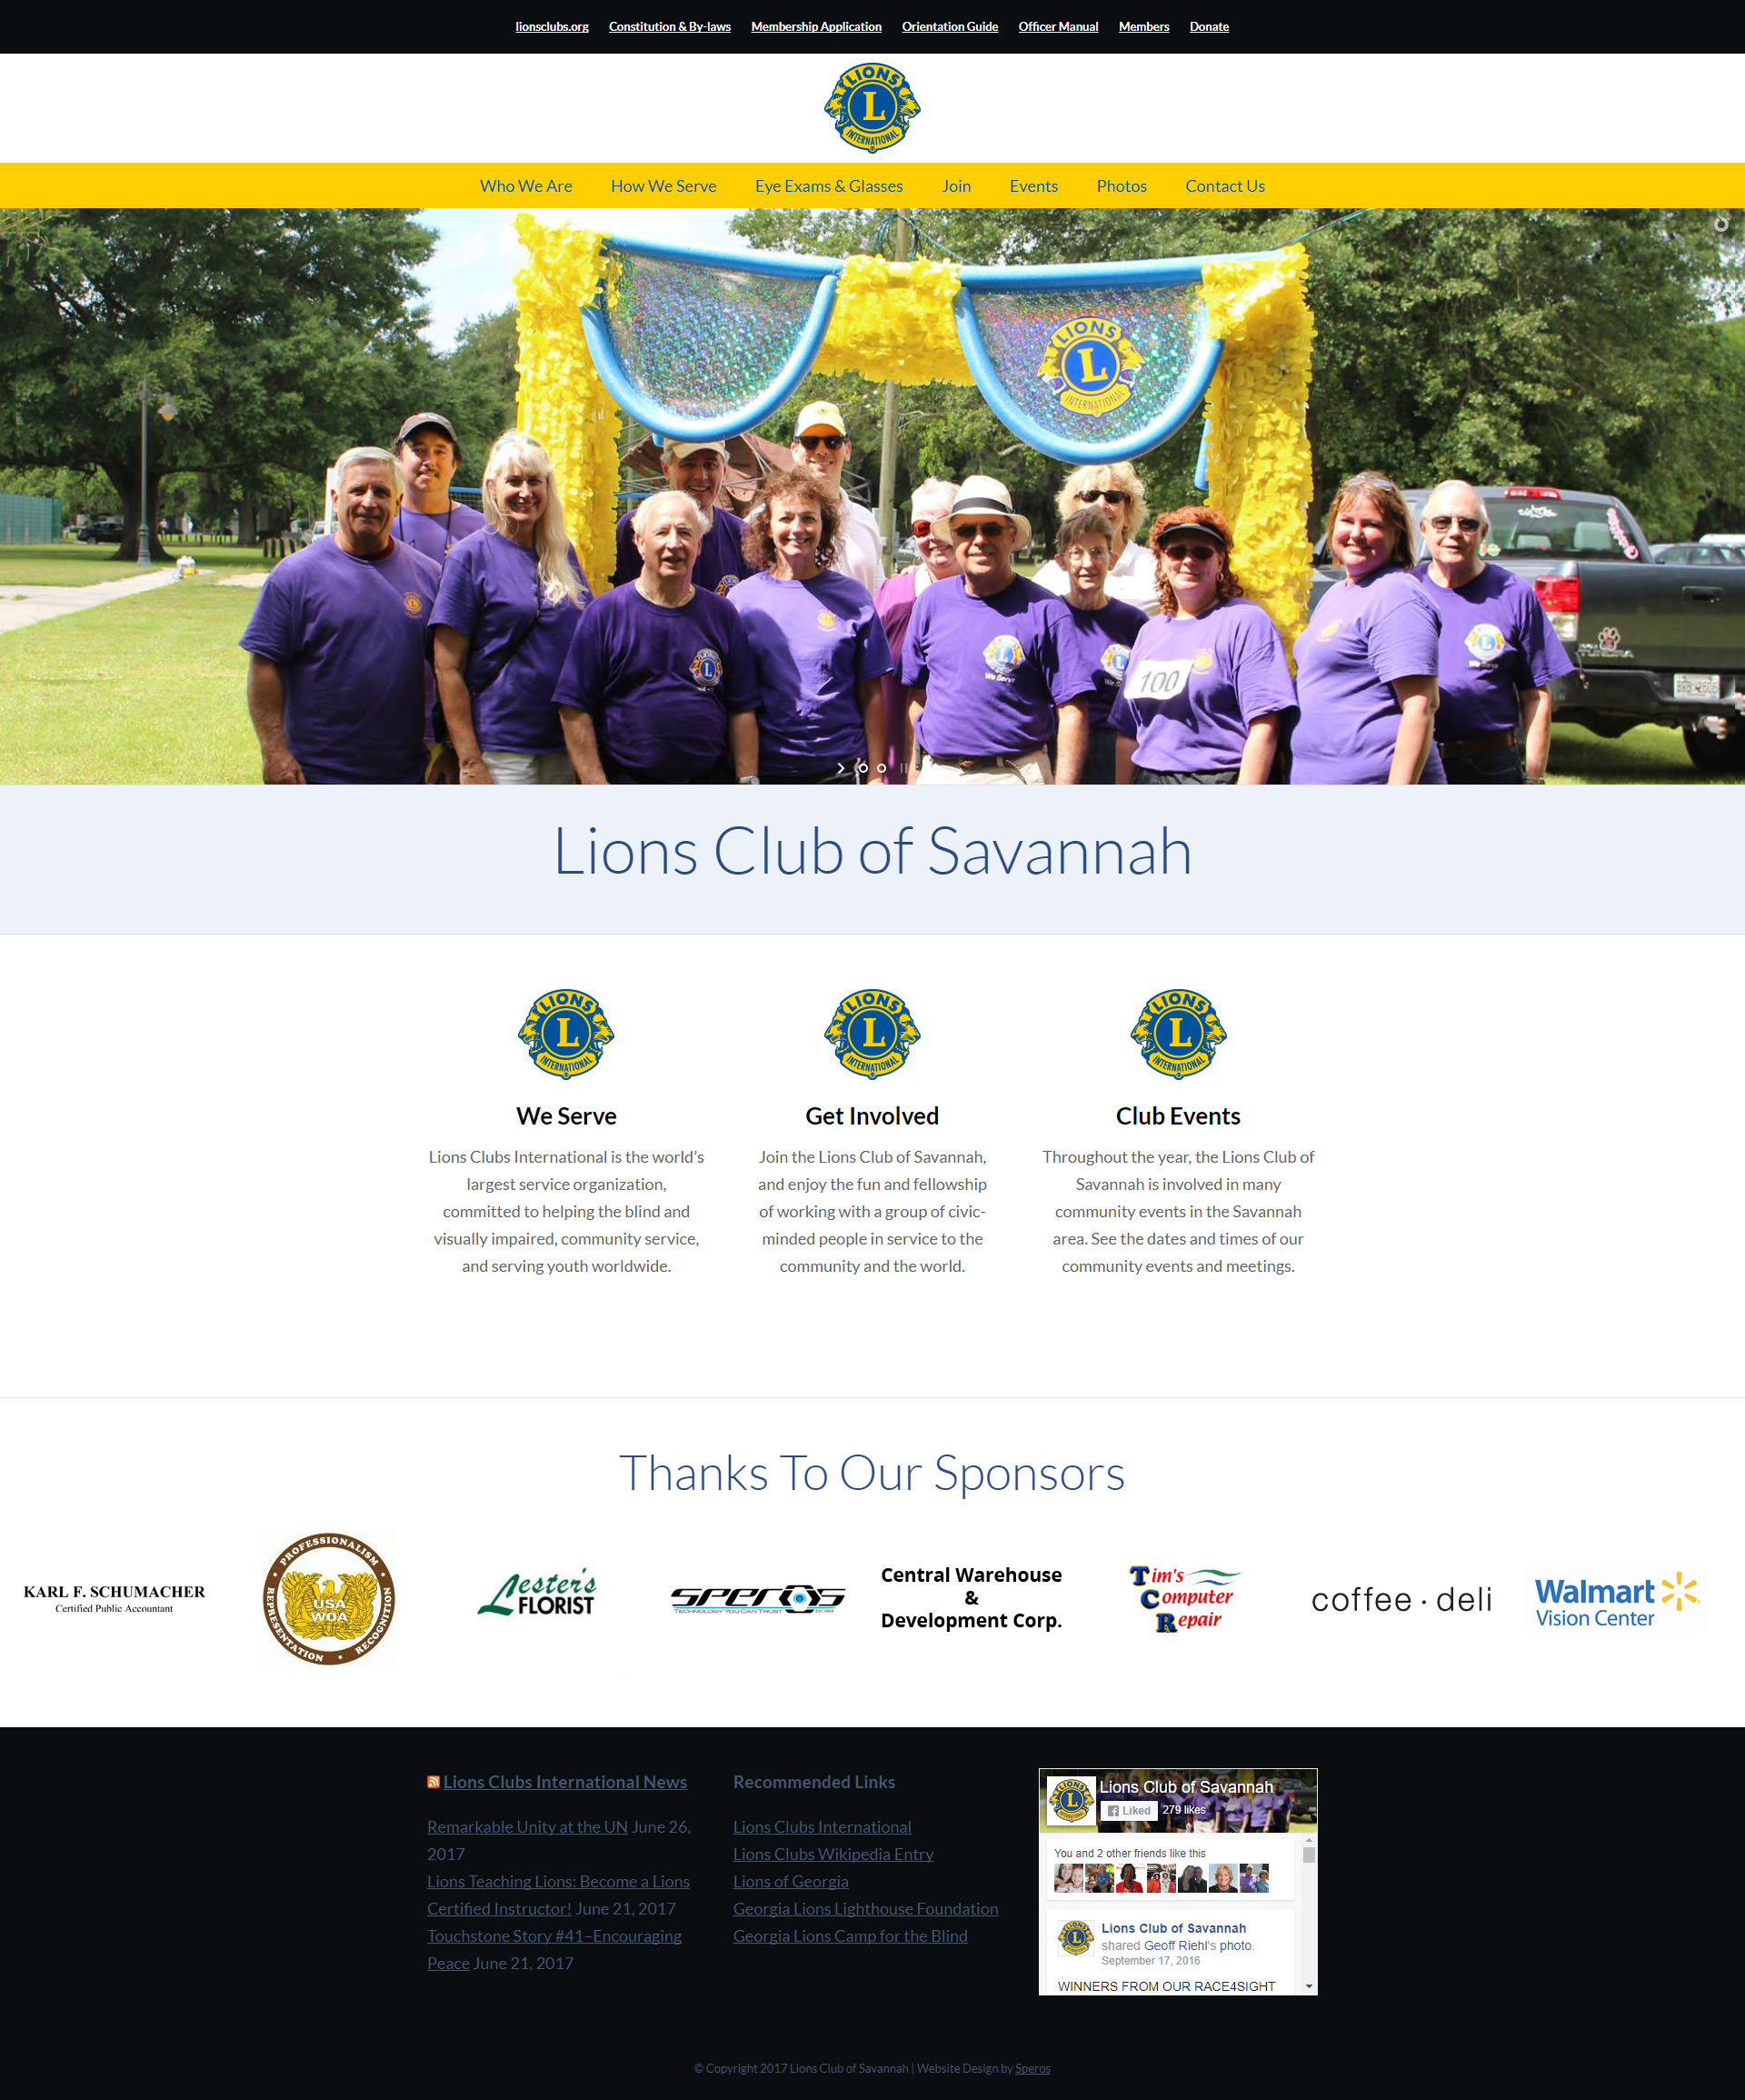 Lions Club of Savannah - Speros Web Design - Savannah